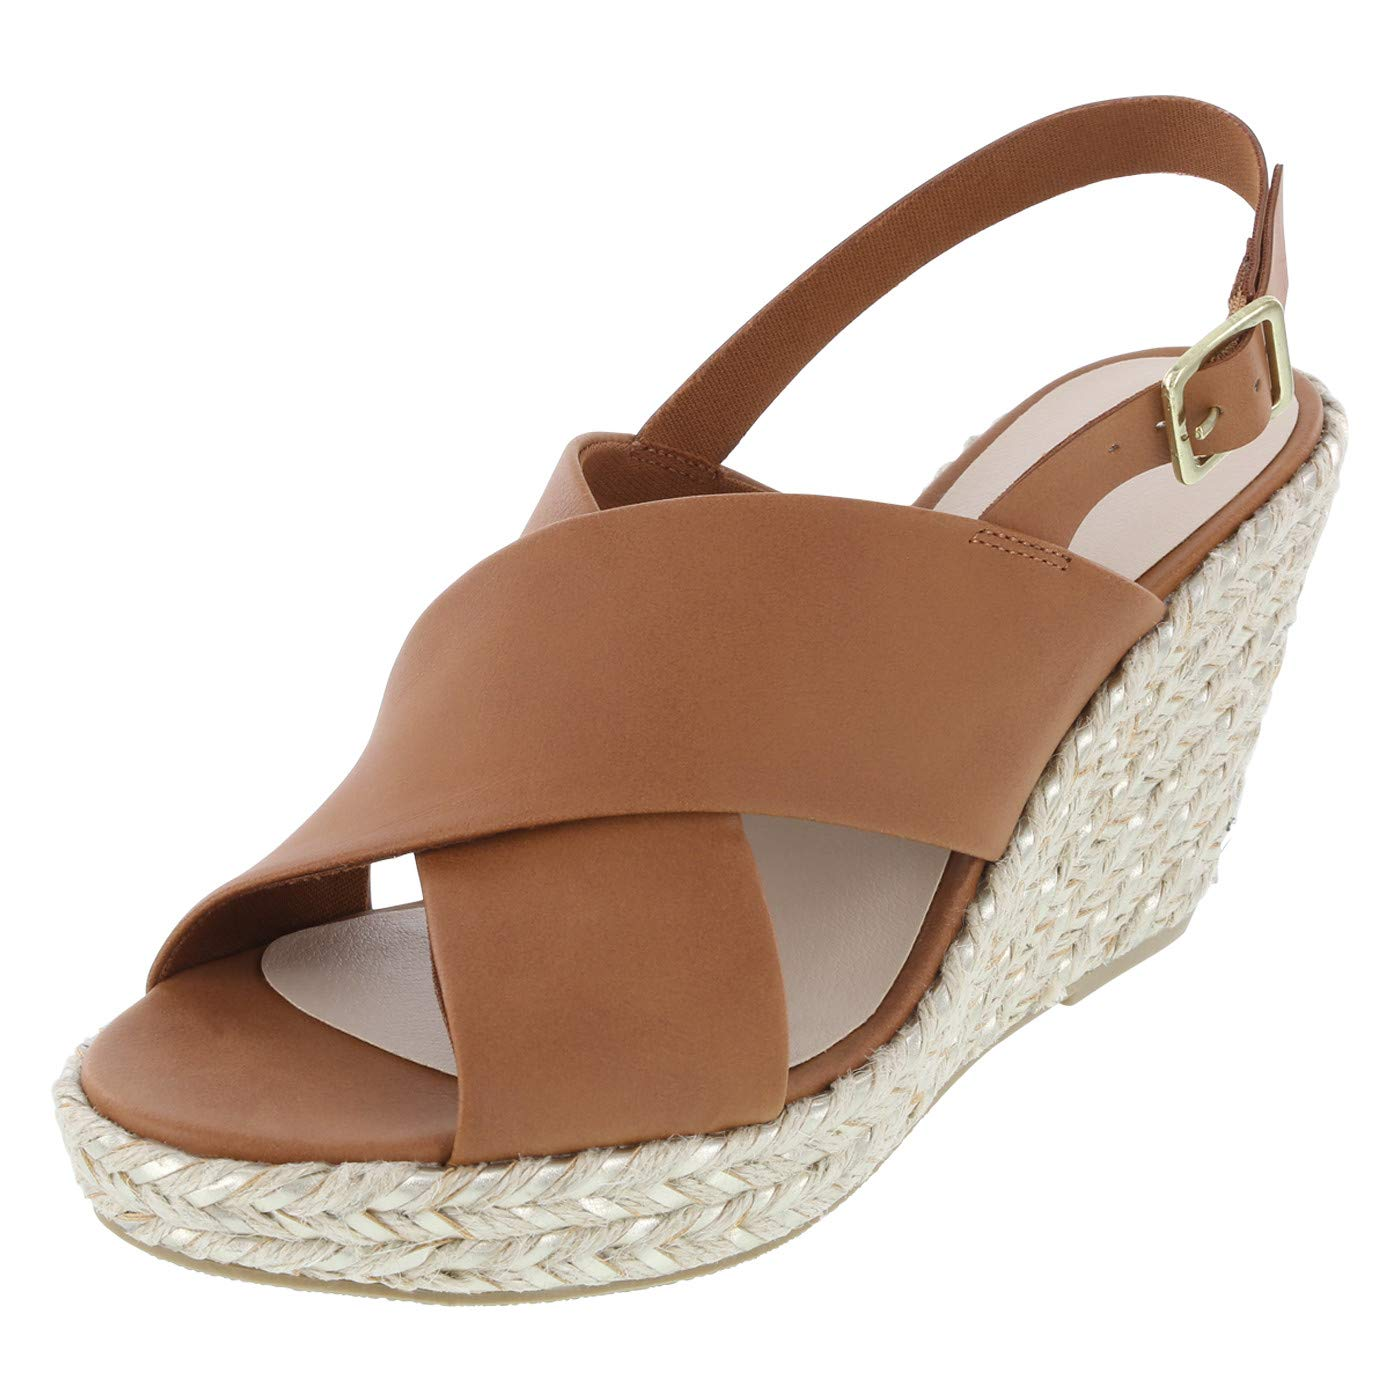 Buy Christian Siriano for Payless